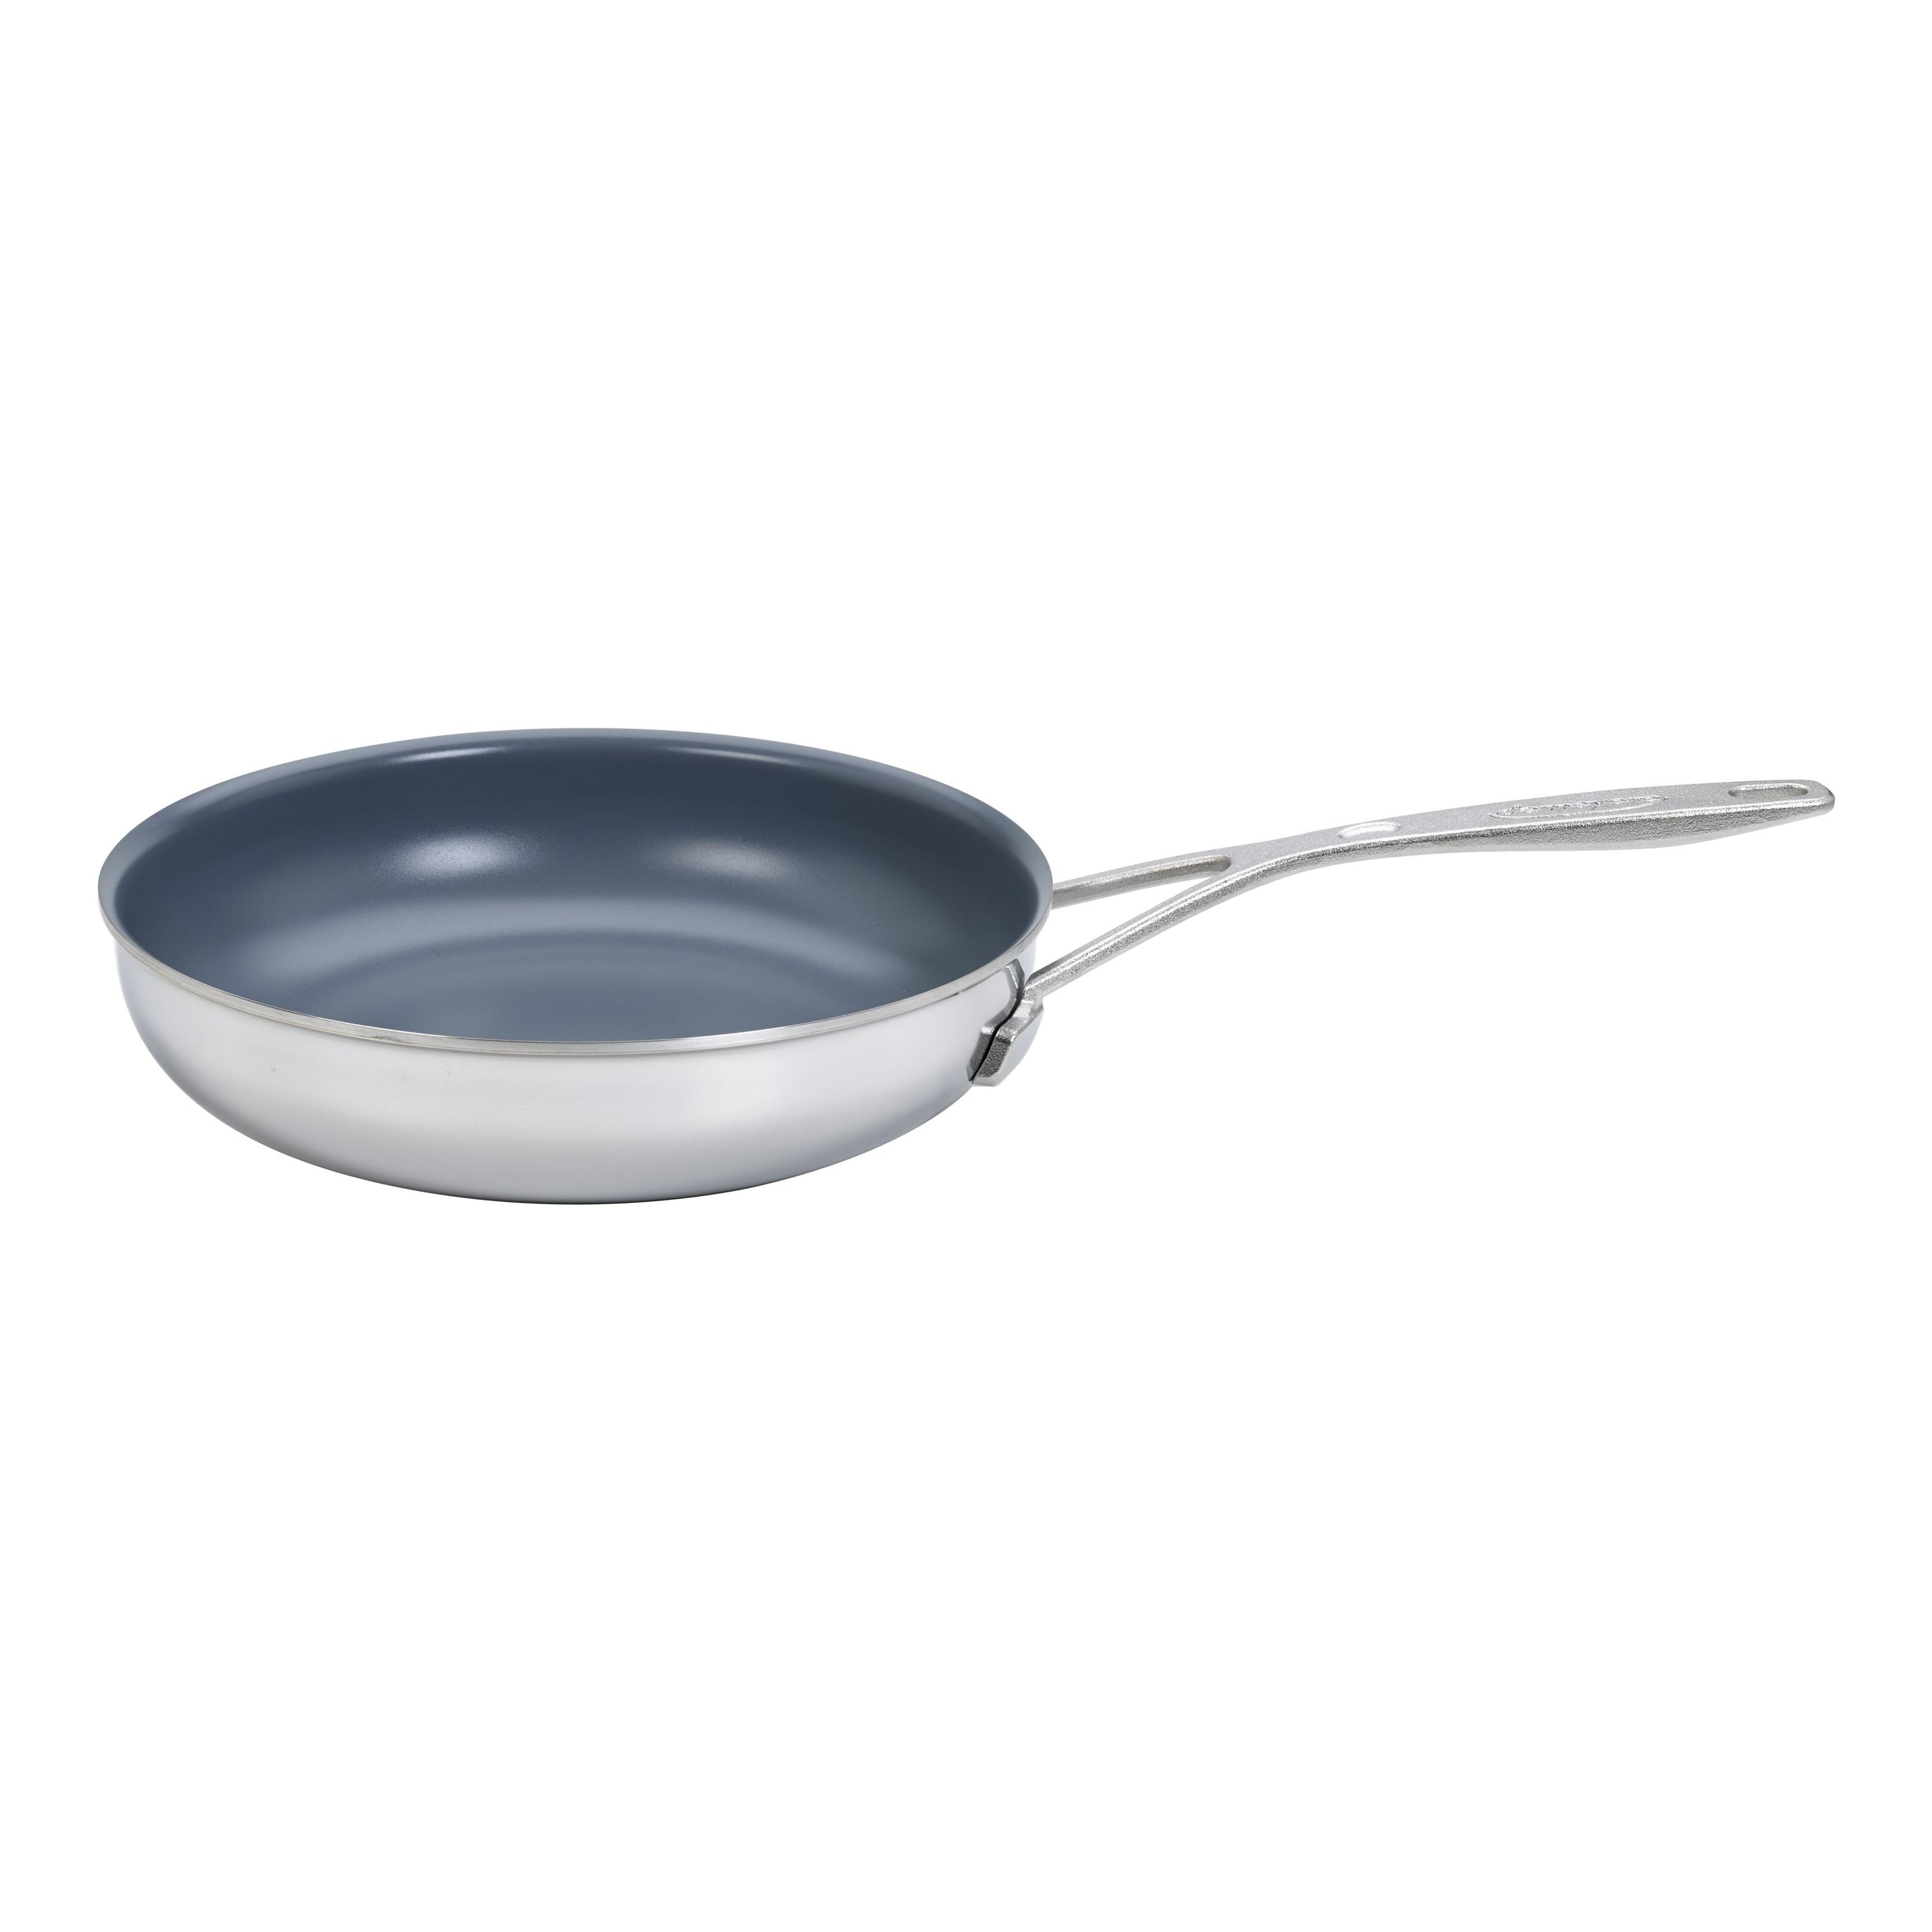 Demeyere Industry 5 Ply 11 Inch 18 10 Stainless Steel